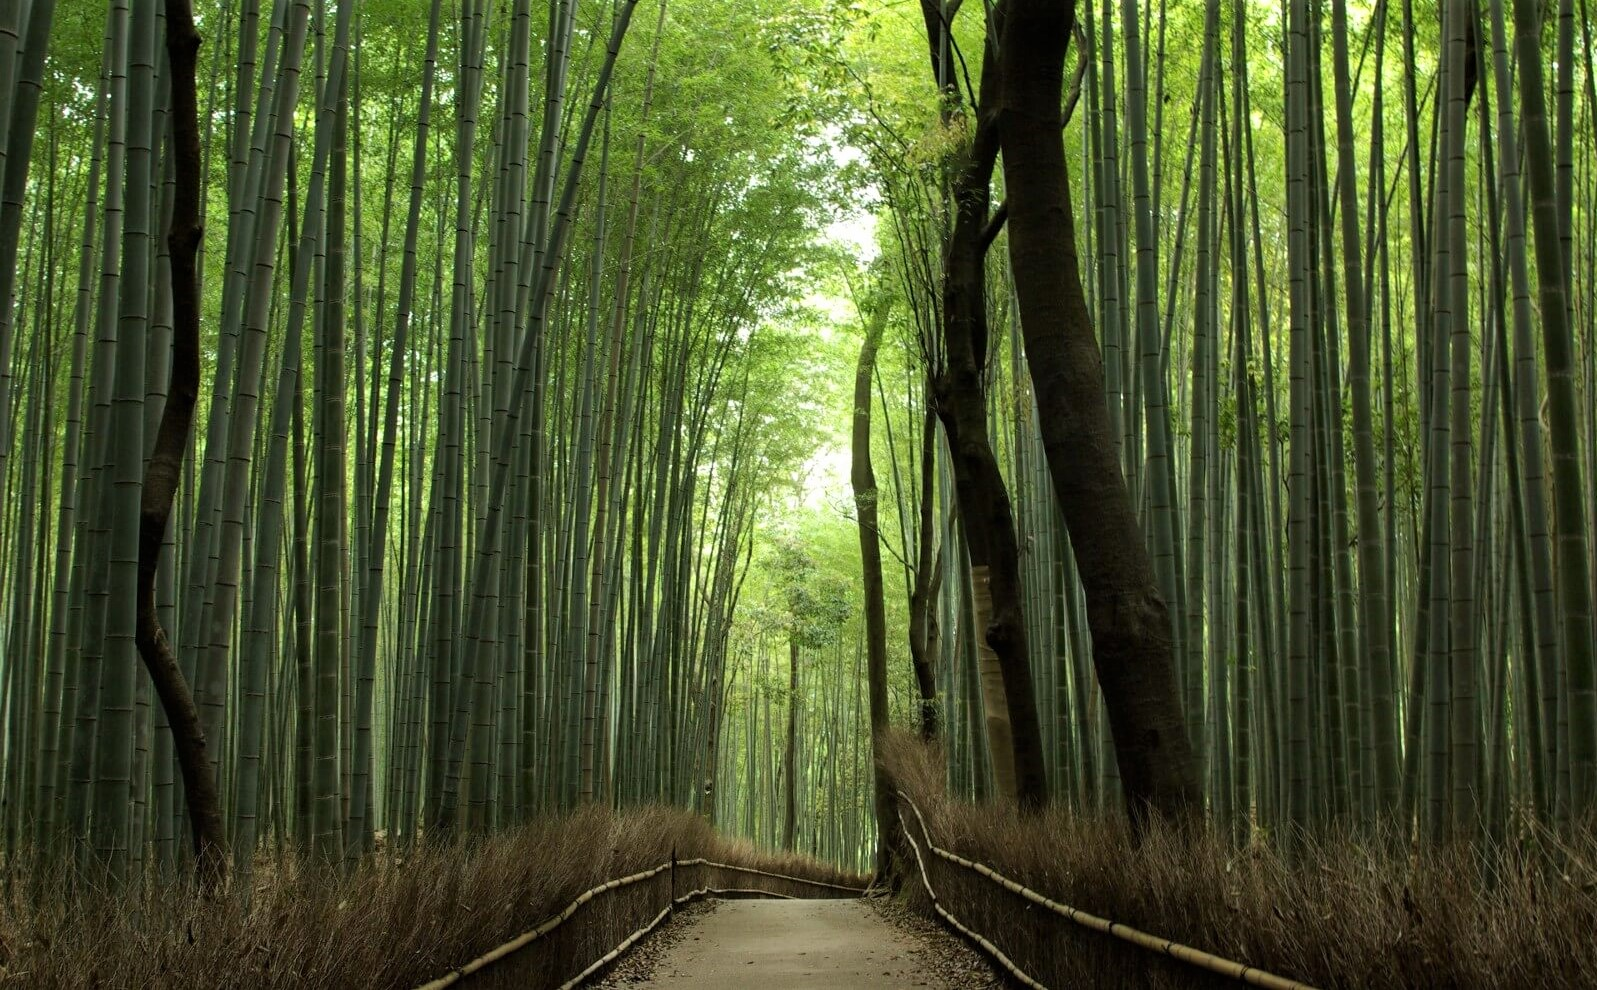 The peaceful path at the bamboo grove in Arashiyama